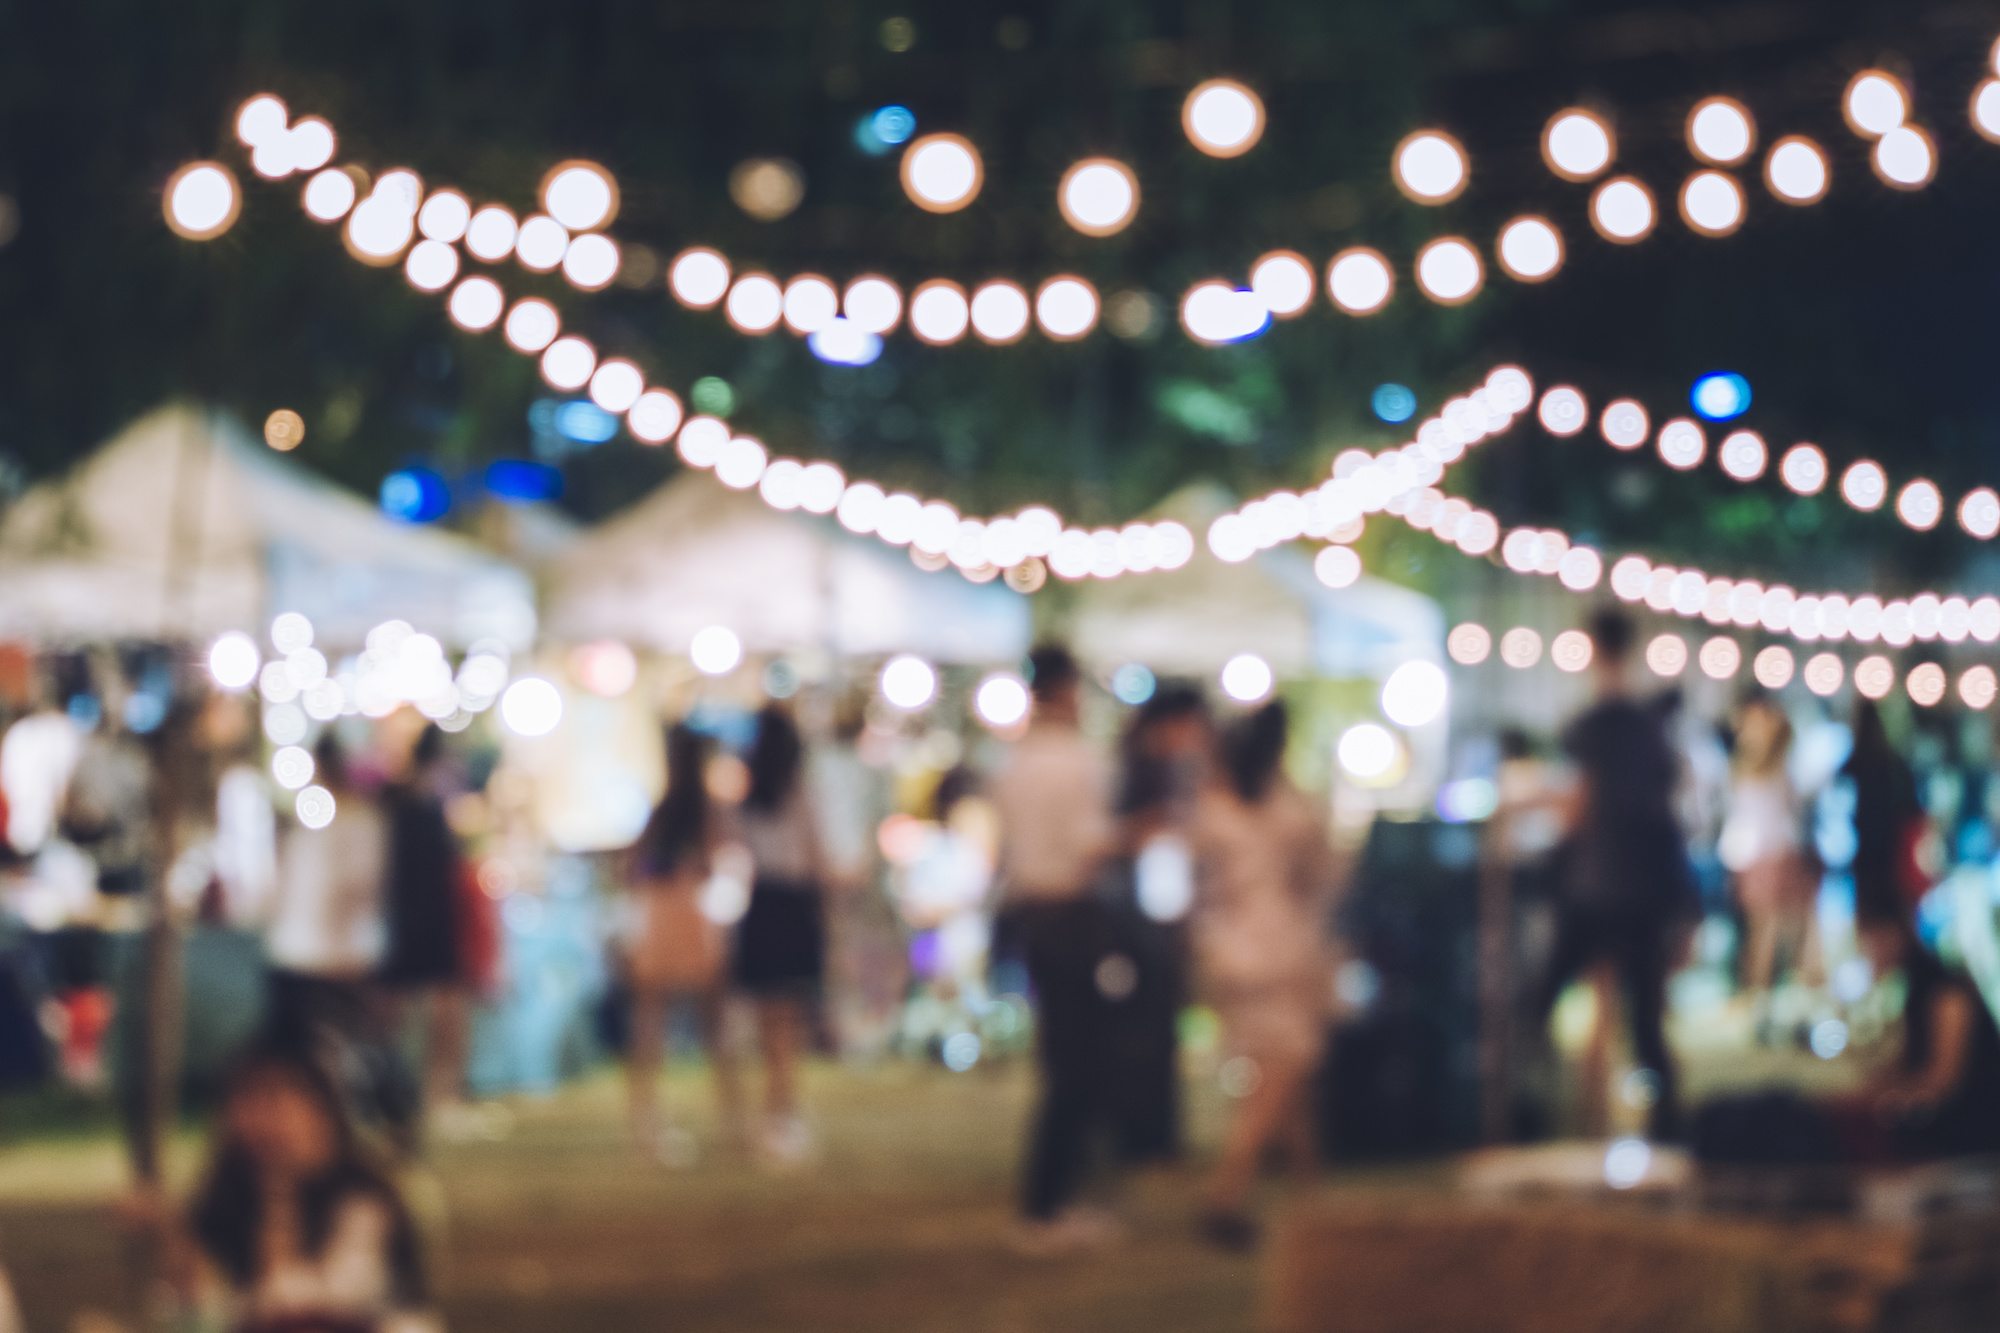 blurred photo of an outdoor event